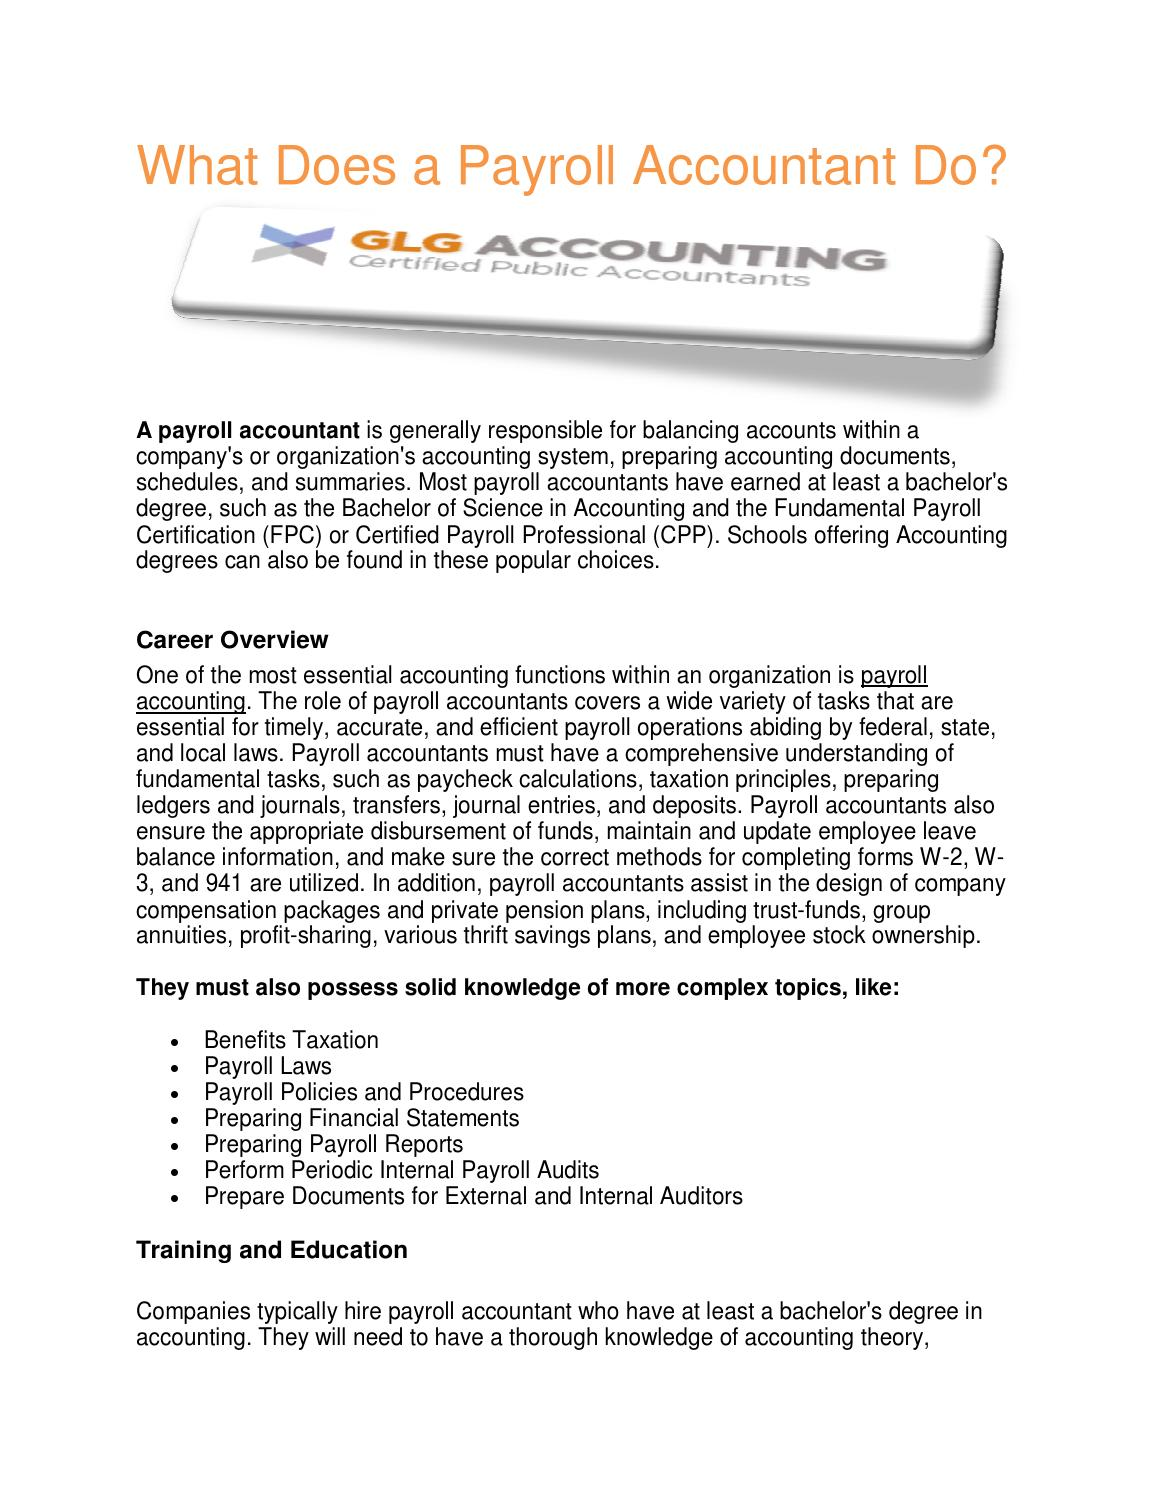 What Does A Payroll Accountant Do By Payrollaccount Issuu